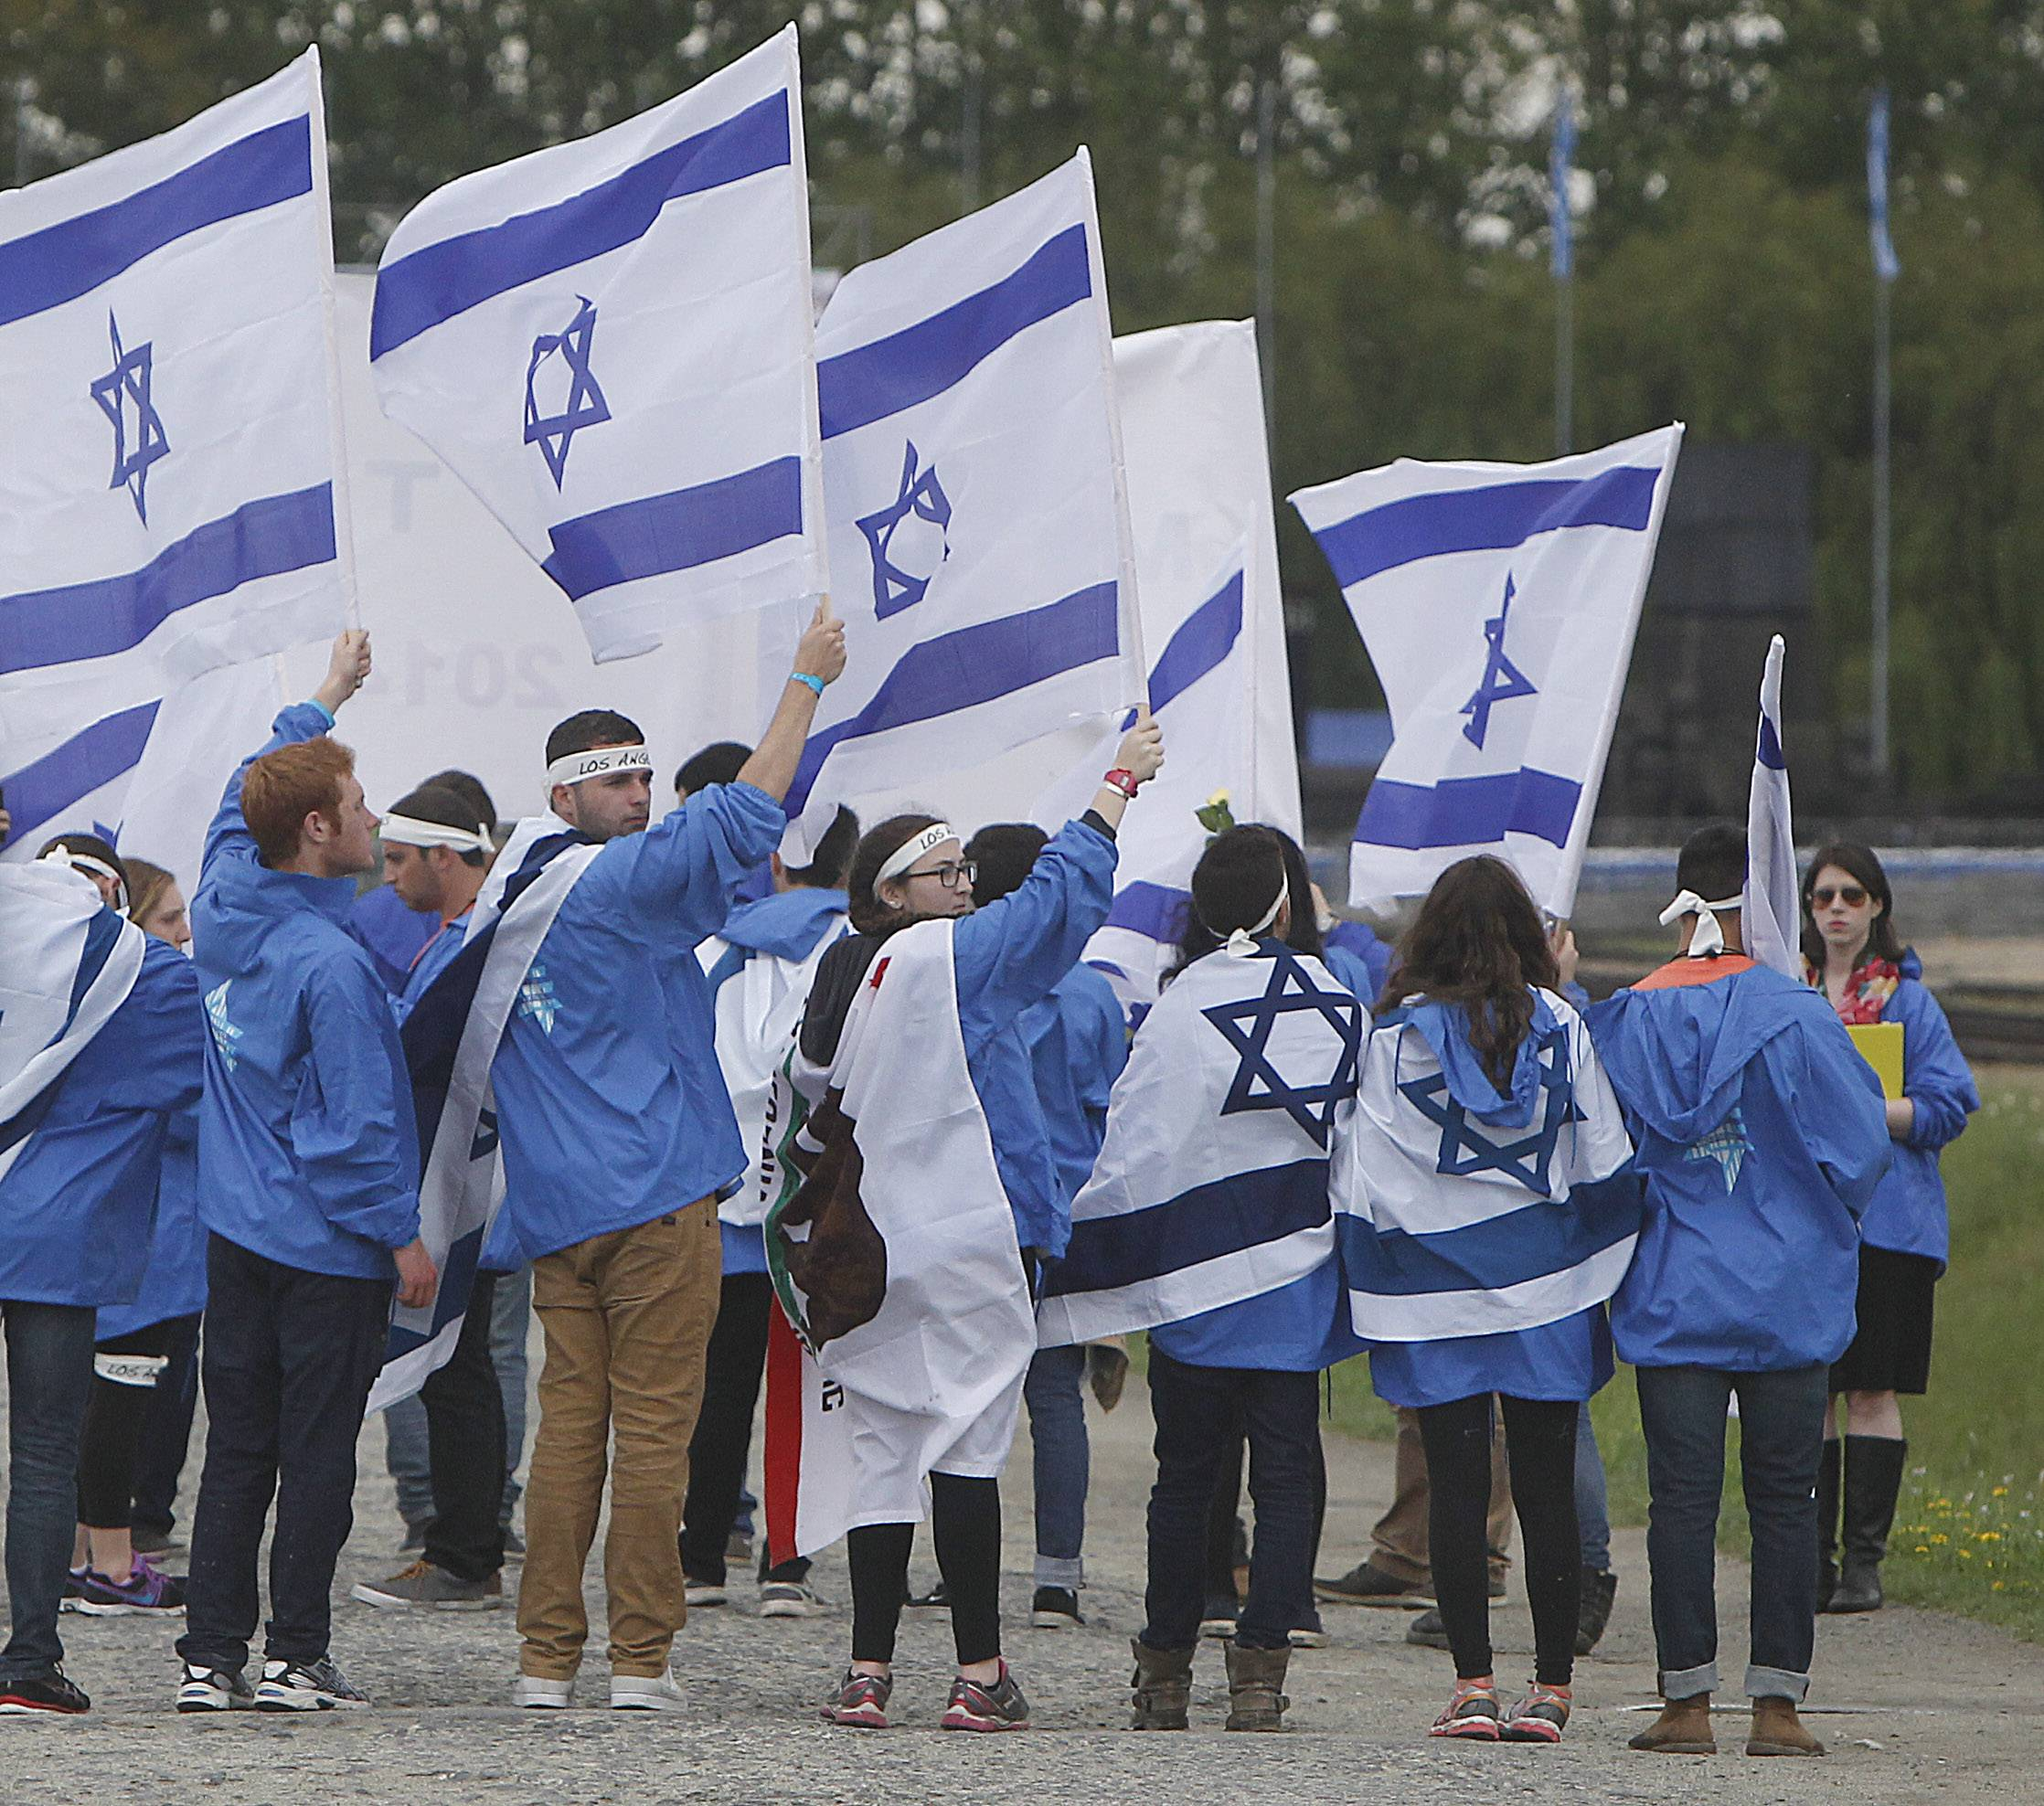 Young Jews from Israel and other countries march in silence between the two parts of Auschwitz-Birkenau, the Nazi German death camp, in an annual march of the living in Oswiecim, Poland, Monday. This year, the march honors some 430,000 Hungarian Jews killed in Birkenau gas chambers in 1944.